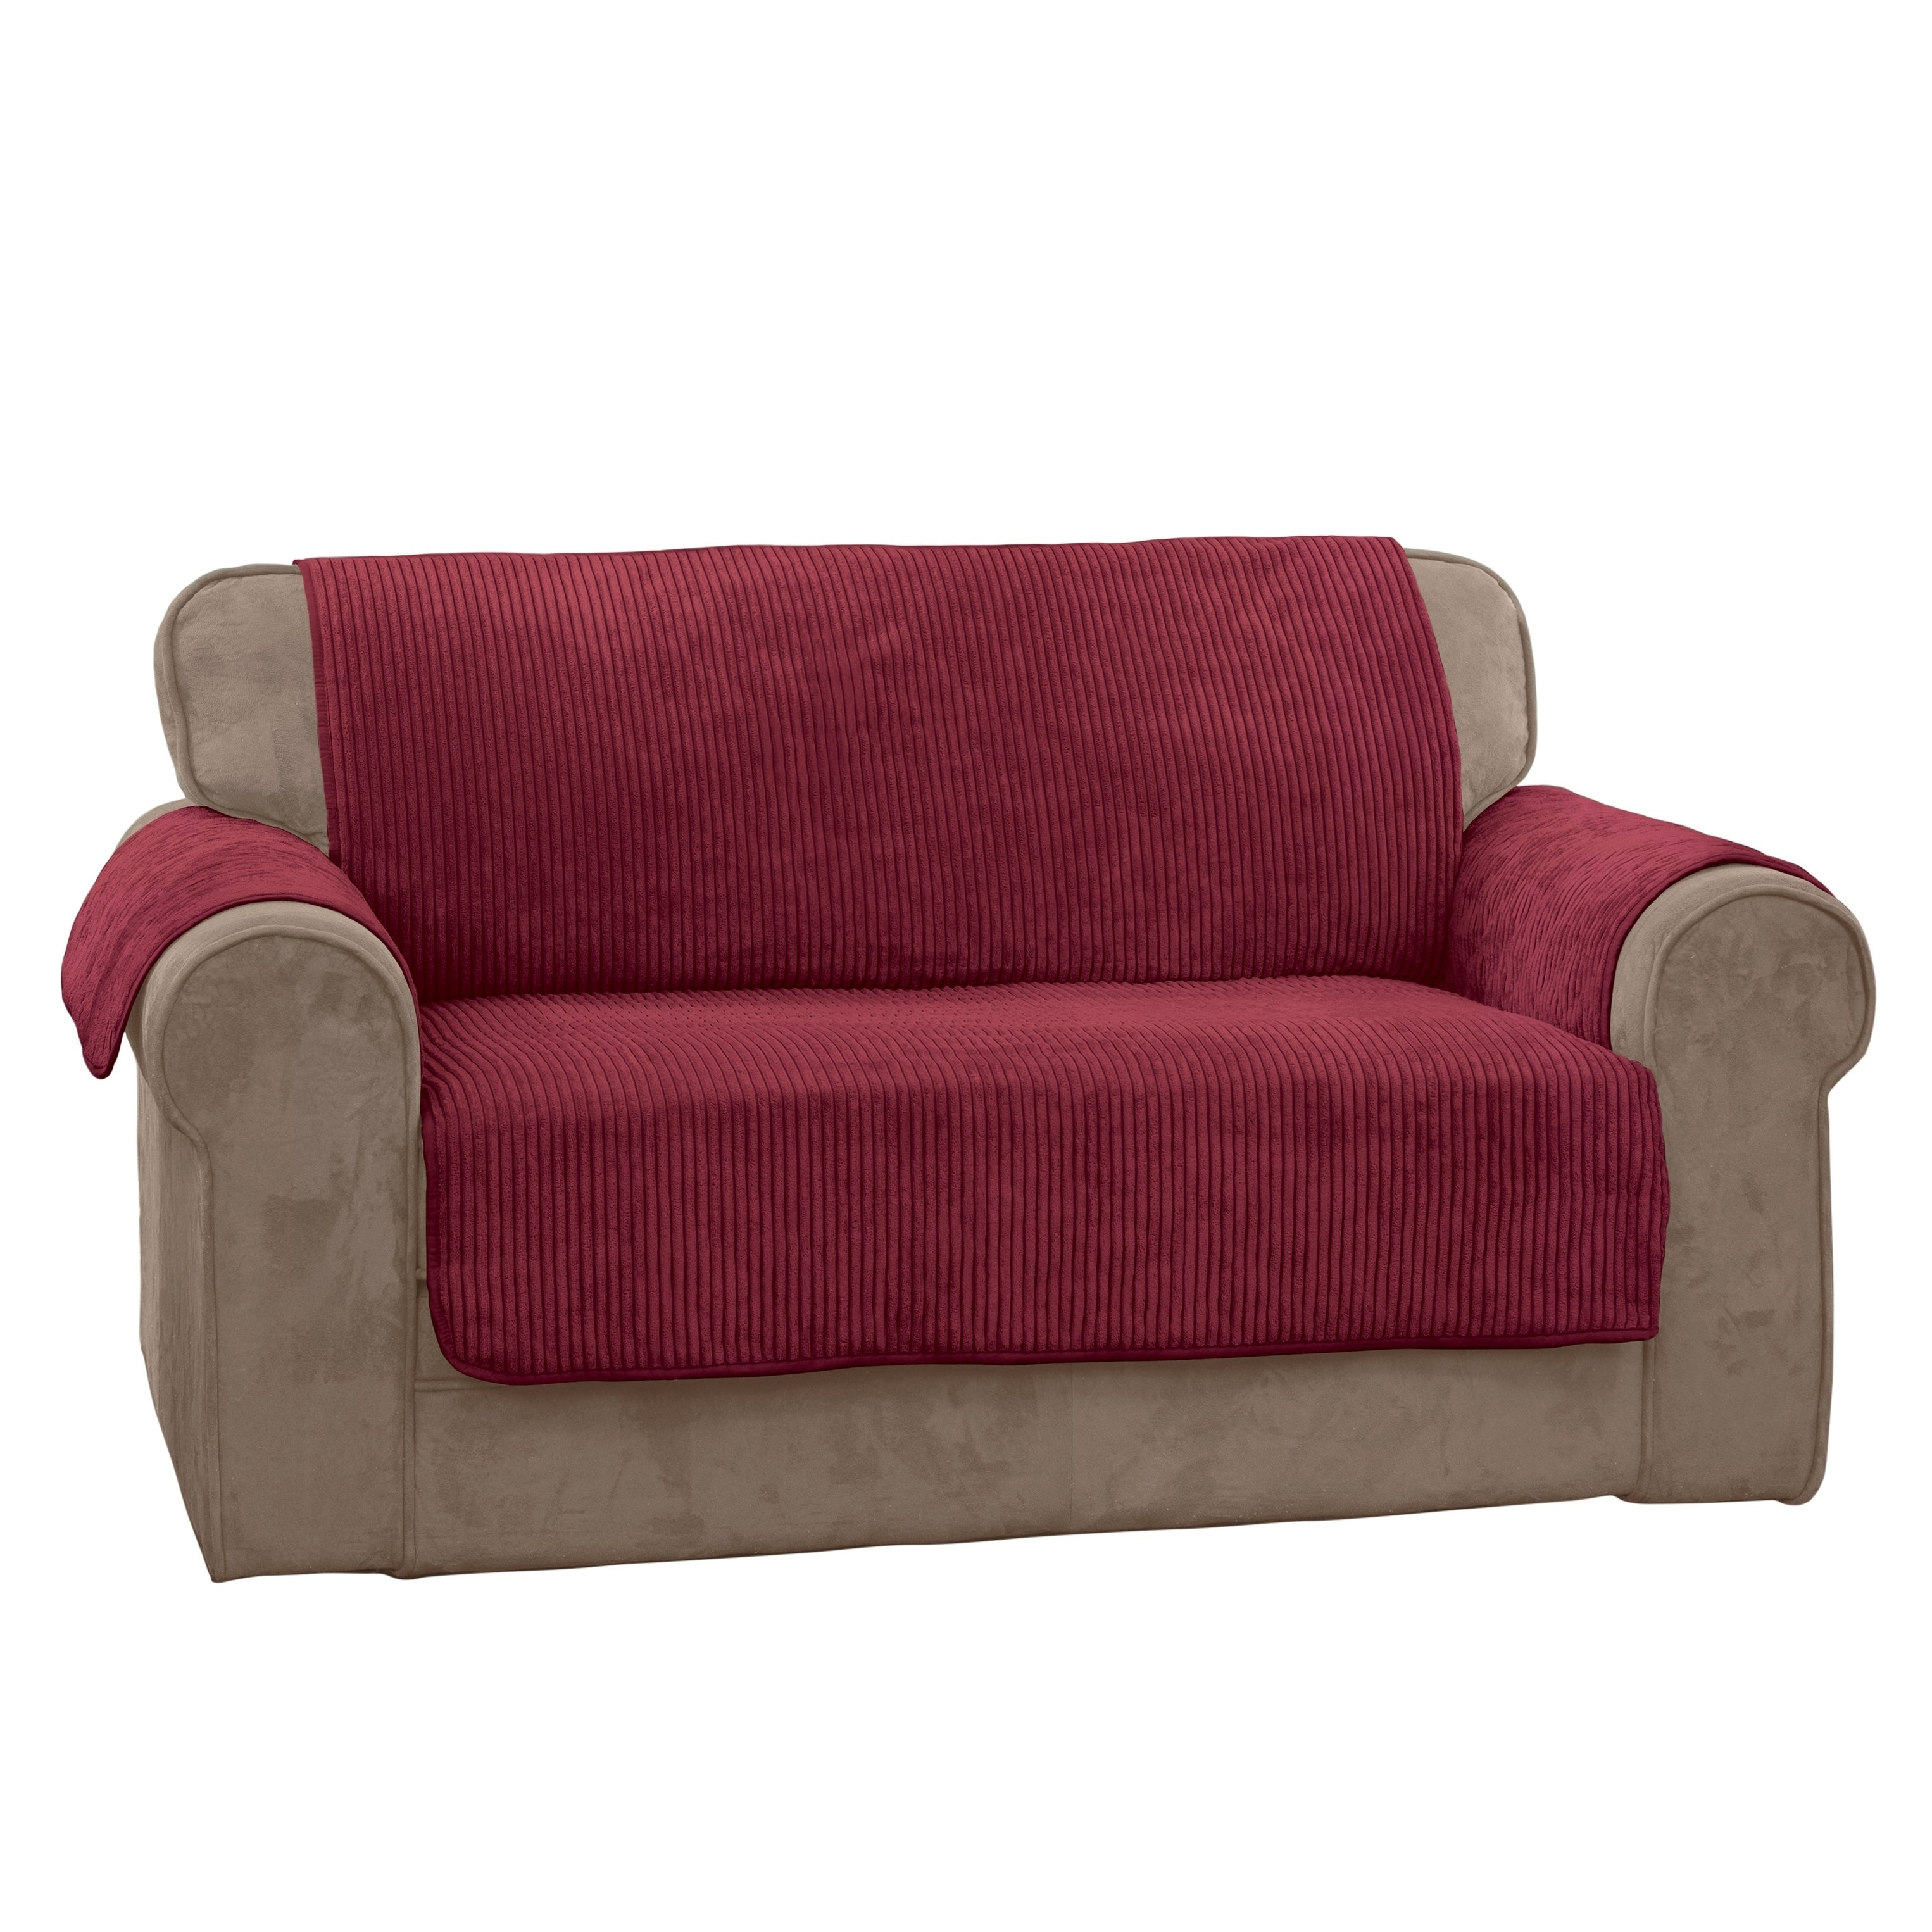 Shop Innovative Textile Solutions Plush Solid Stripe Sofa Slipcover   Free  Shipping On Orders Over $45   Overstock.com   20759081